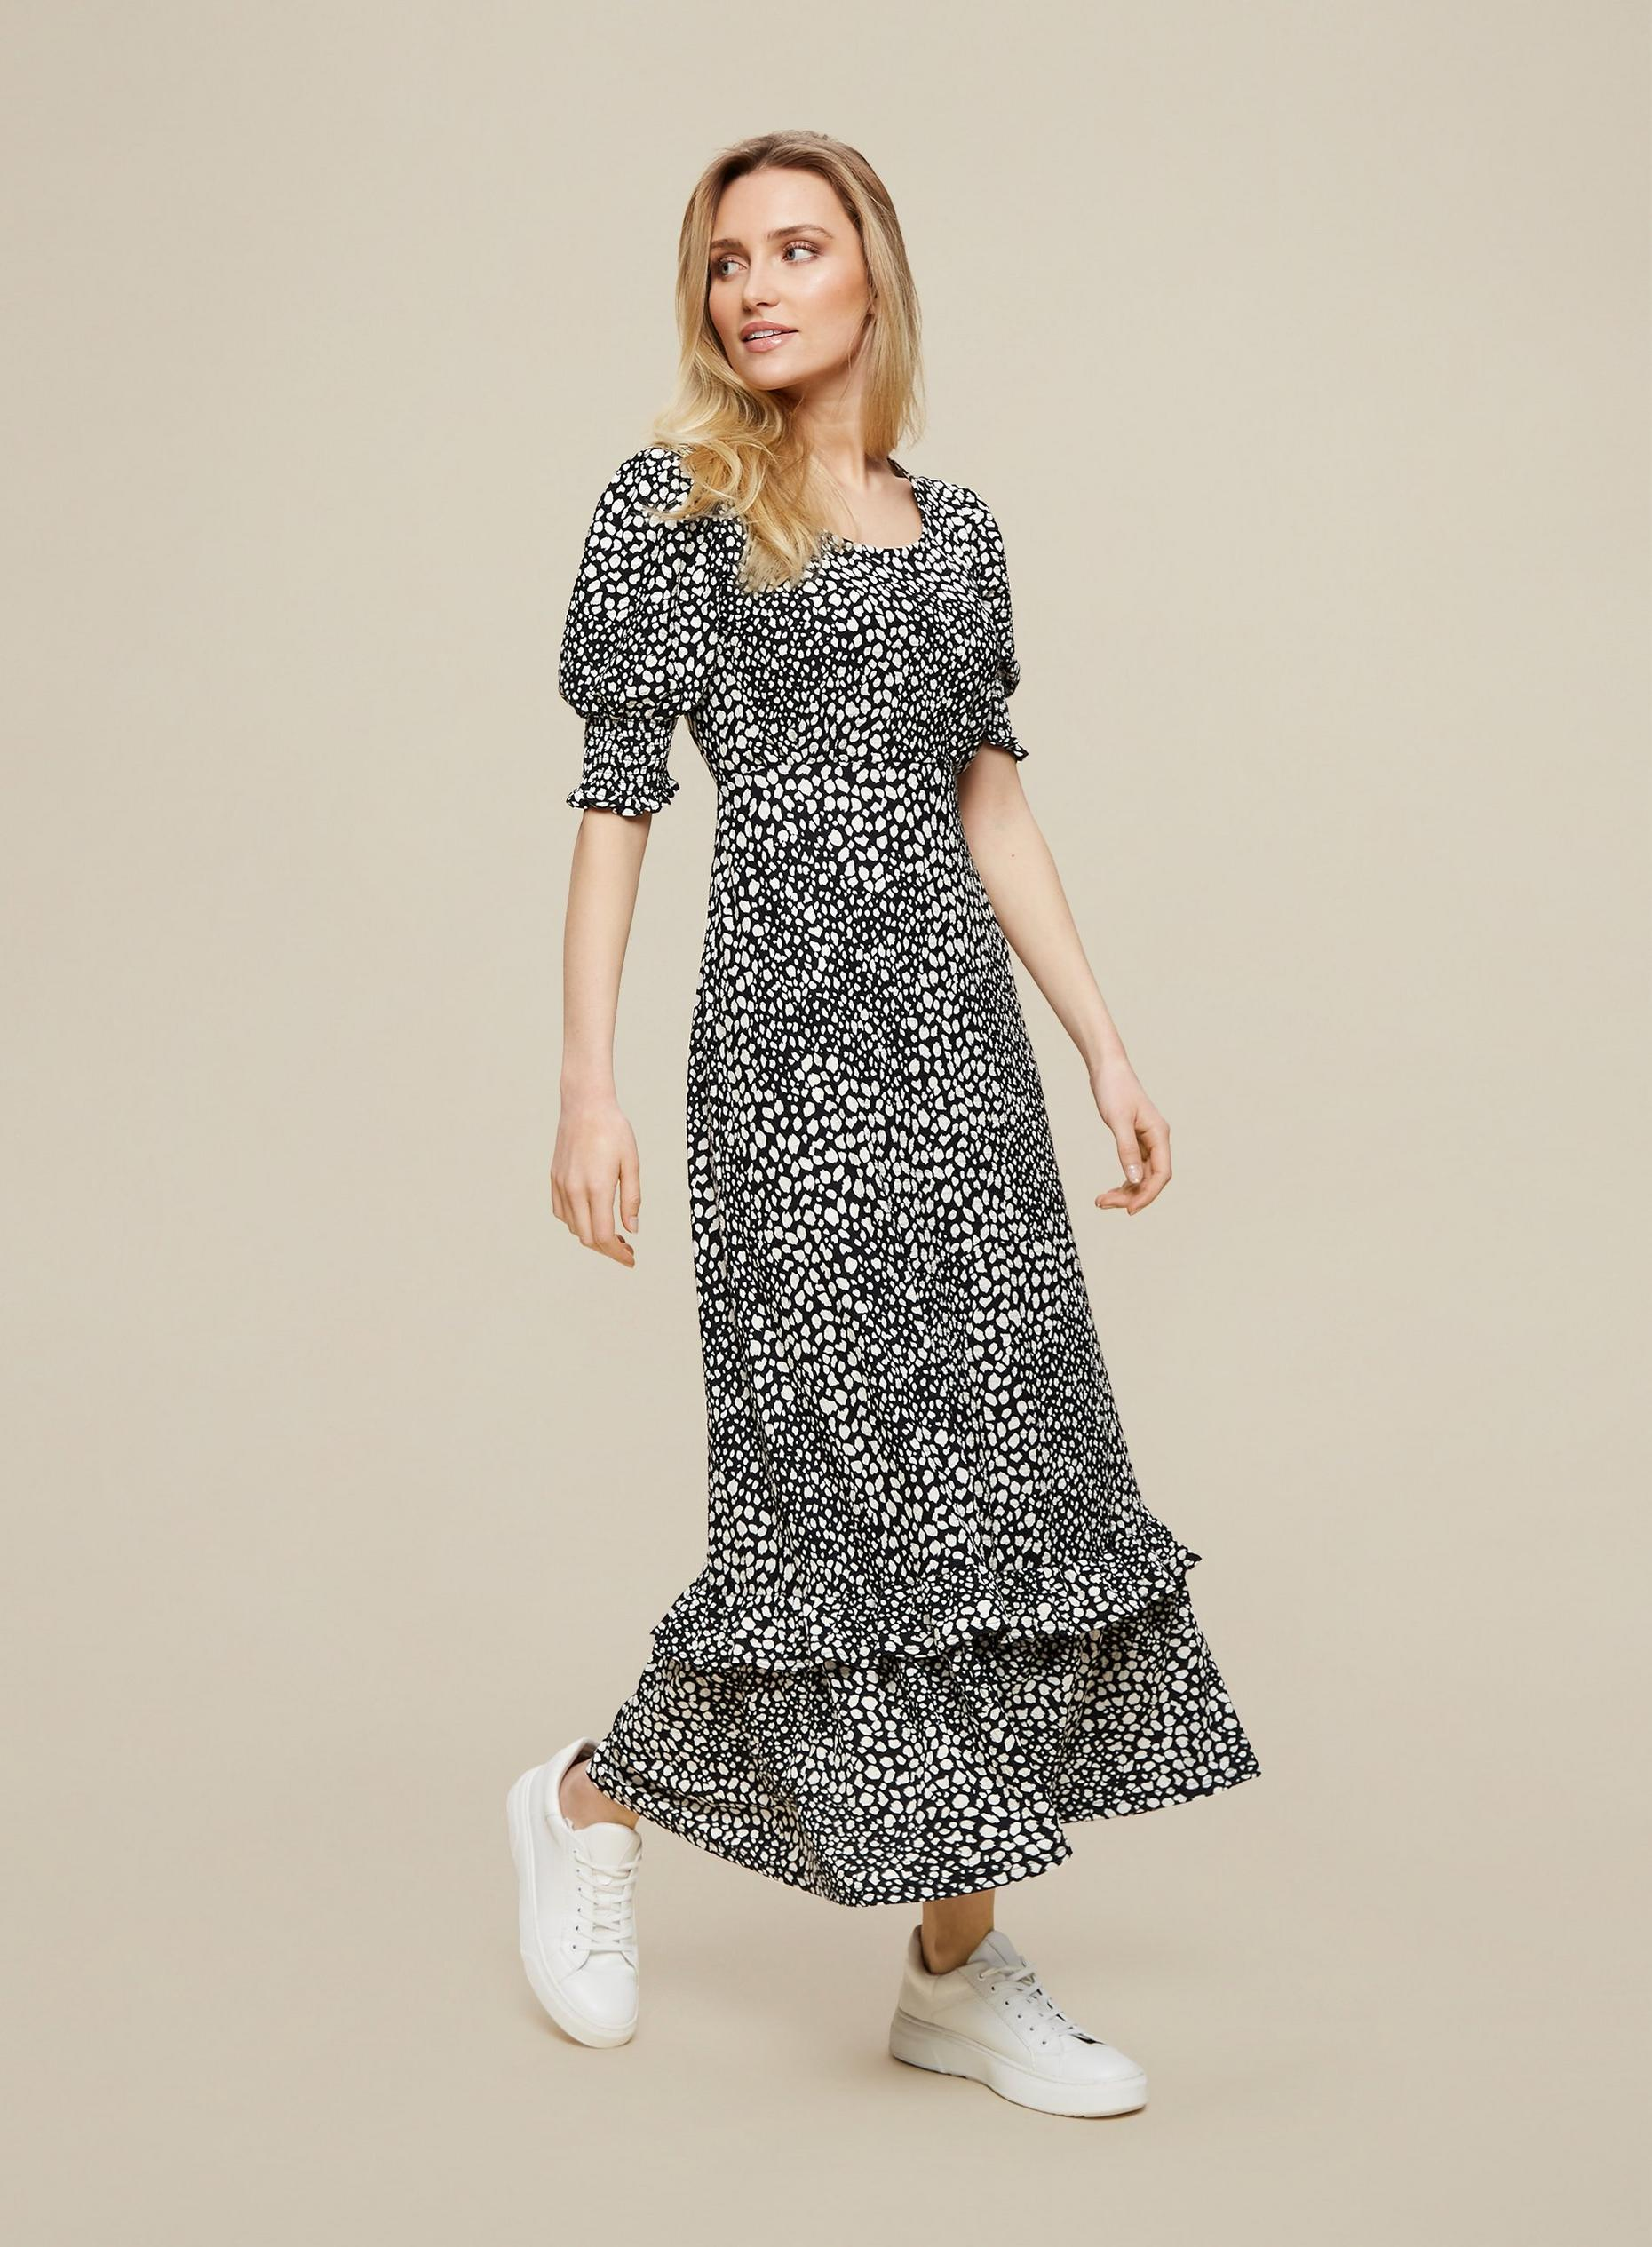 Neutral Leopard Print Midi Wrap Dress